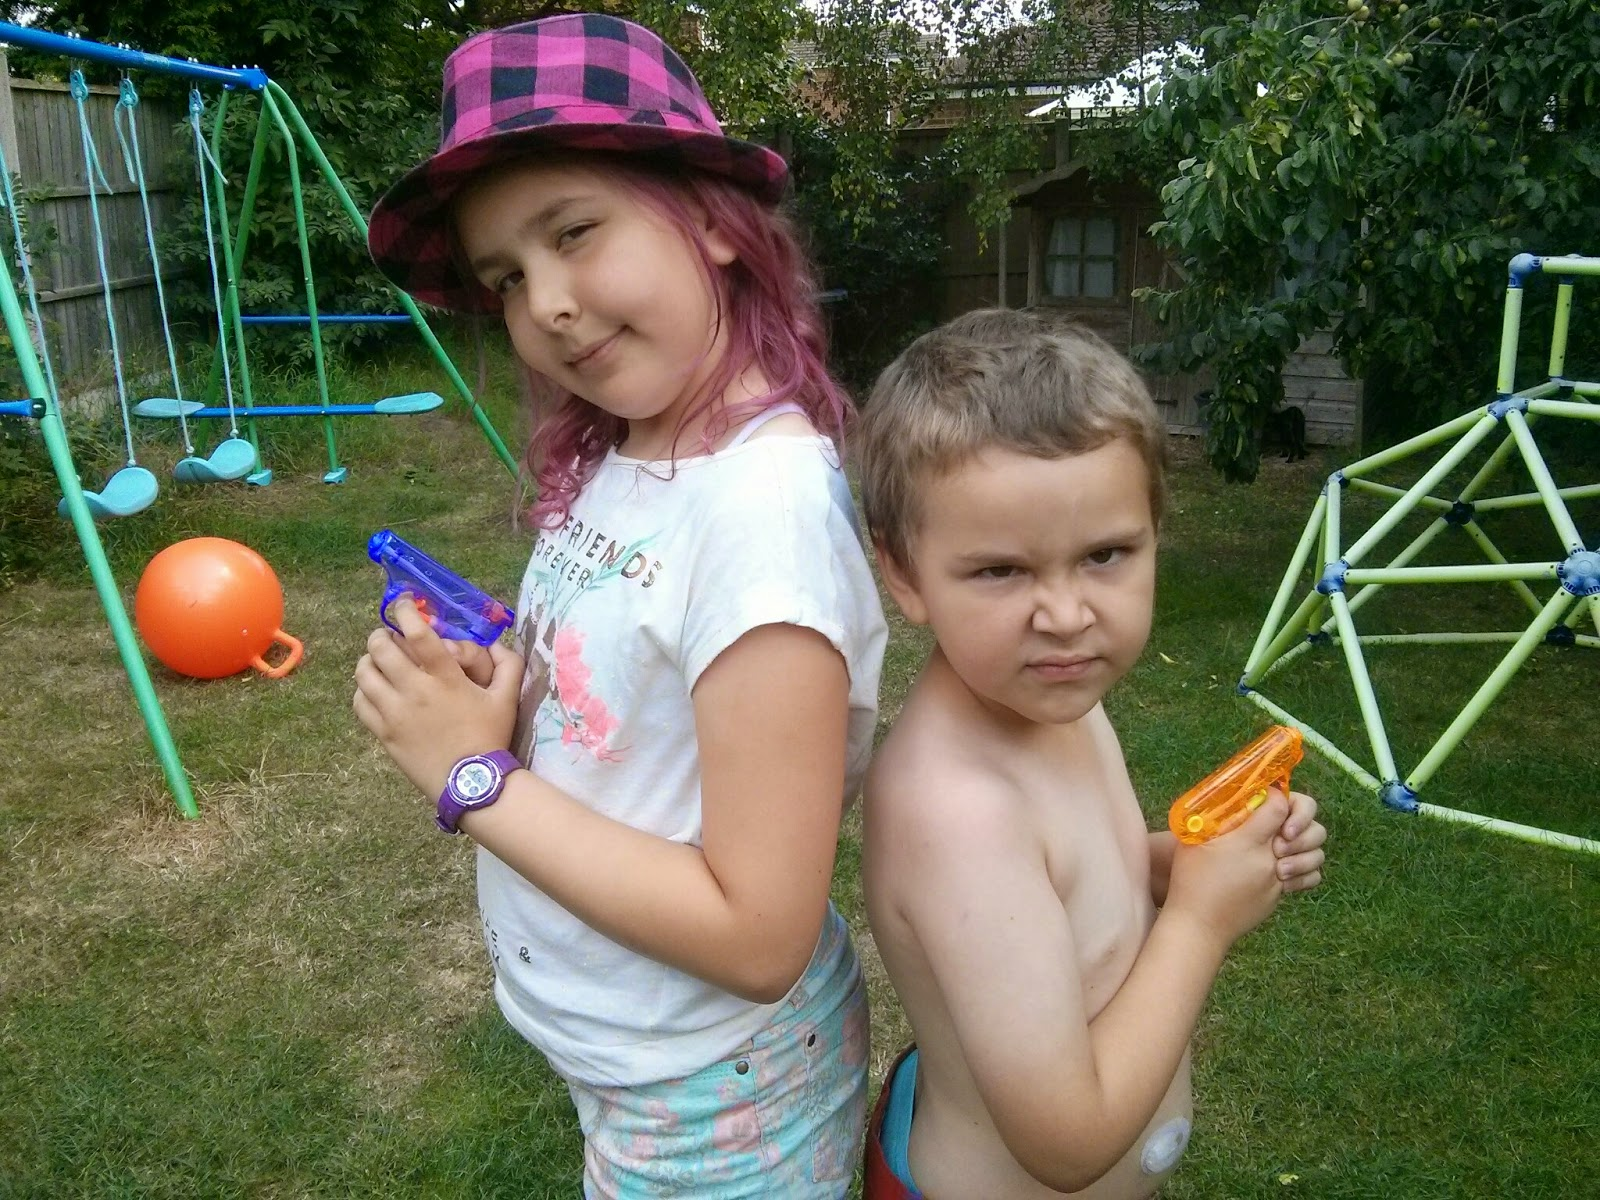 Top Ender and Big Boy posing with their water guns